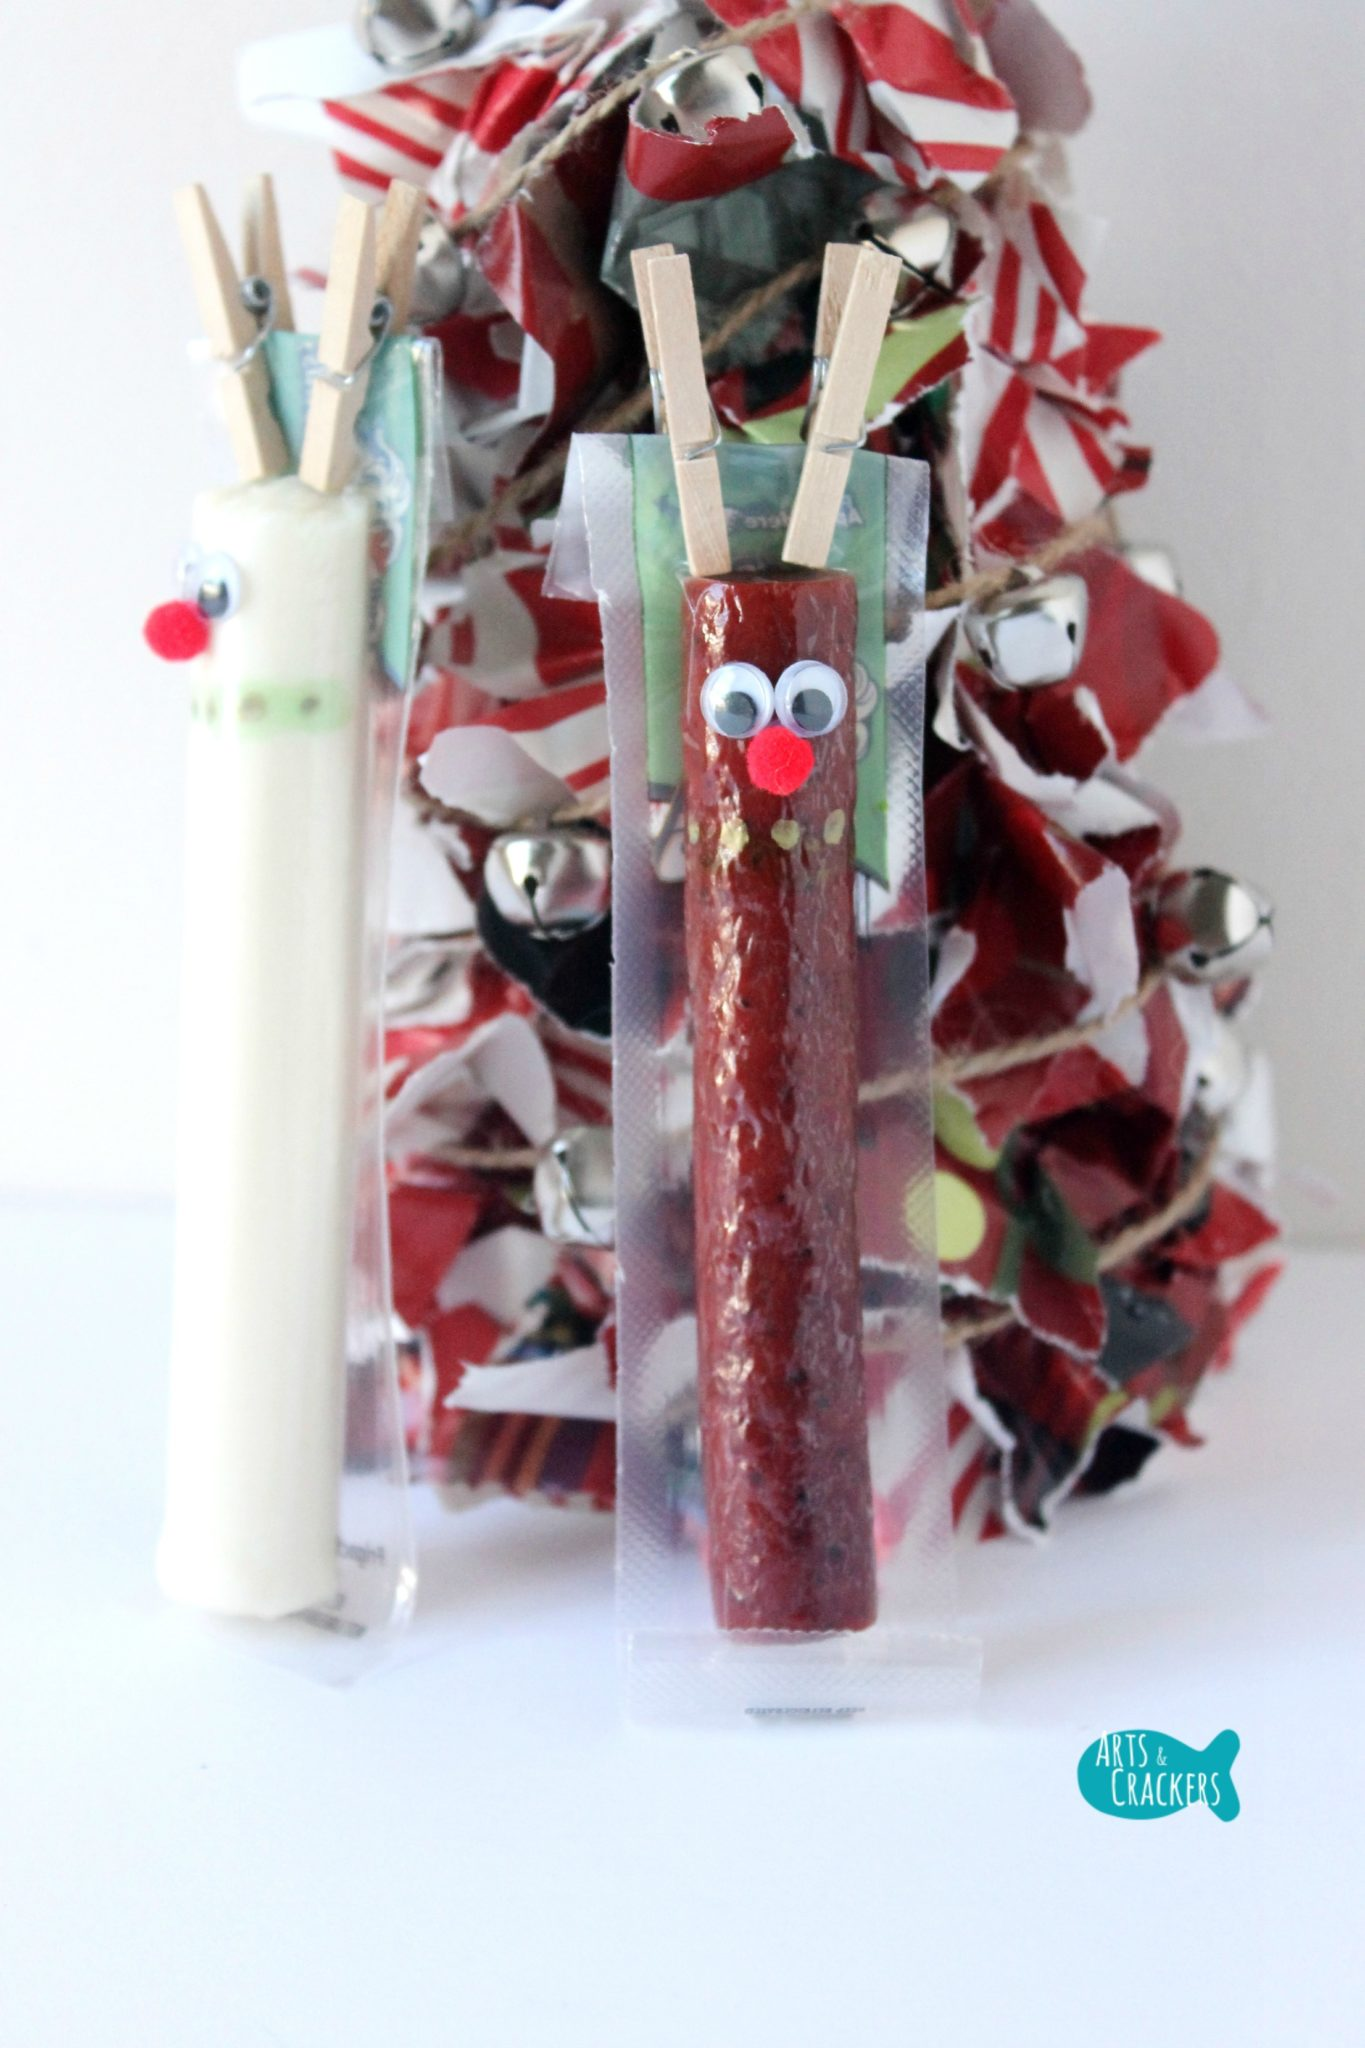 5 Beef StickString Cheese Christmas Snack Ideas